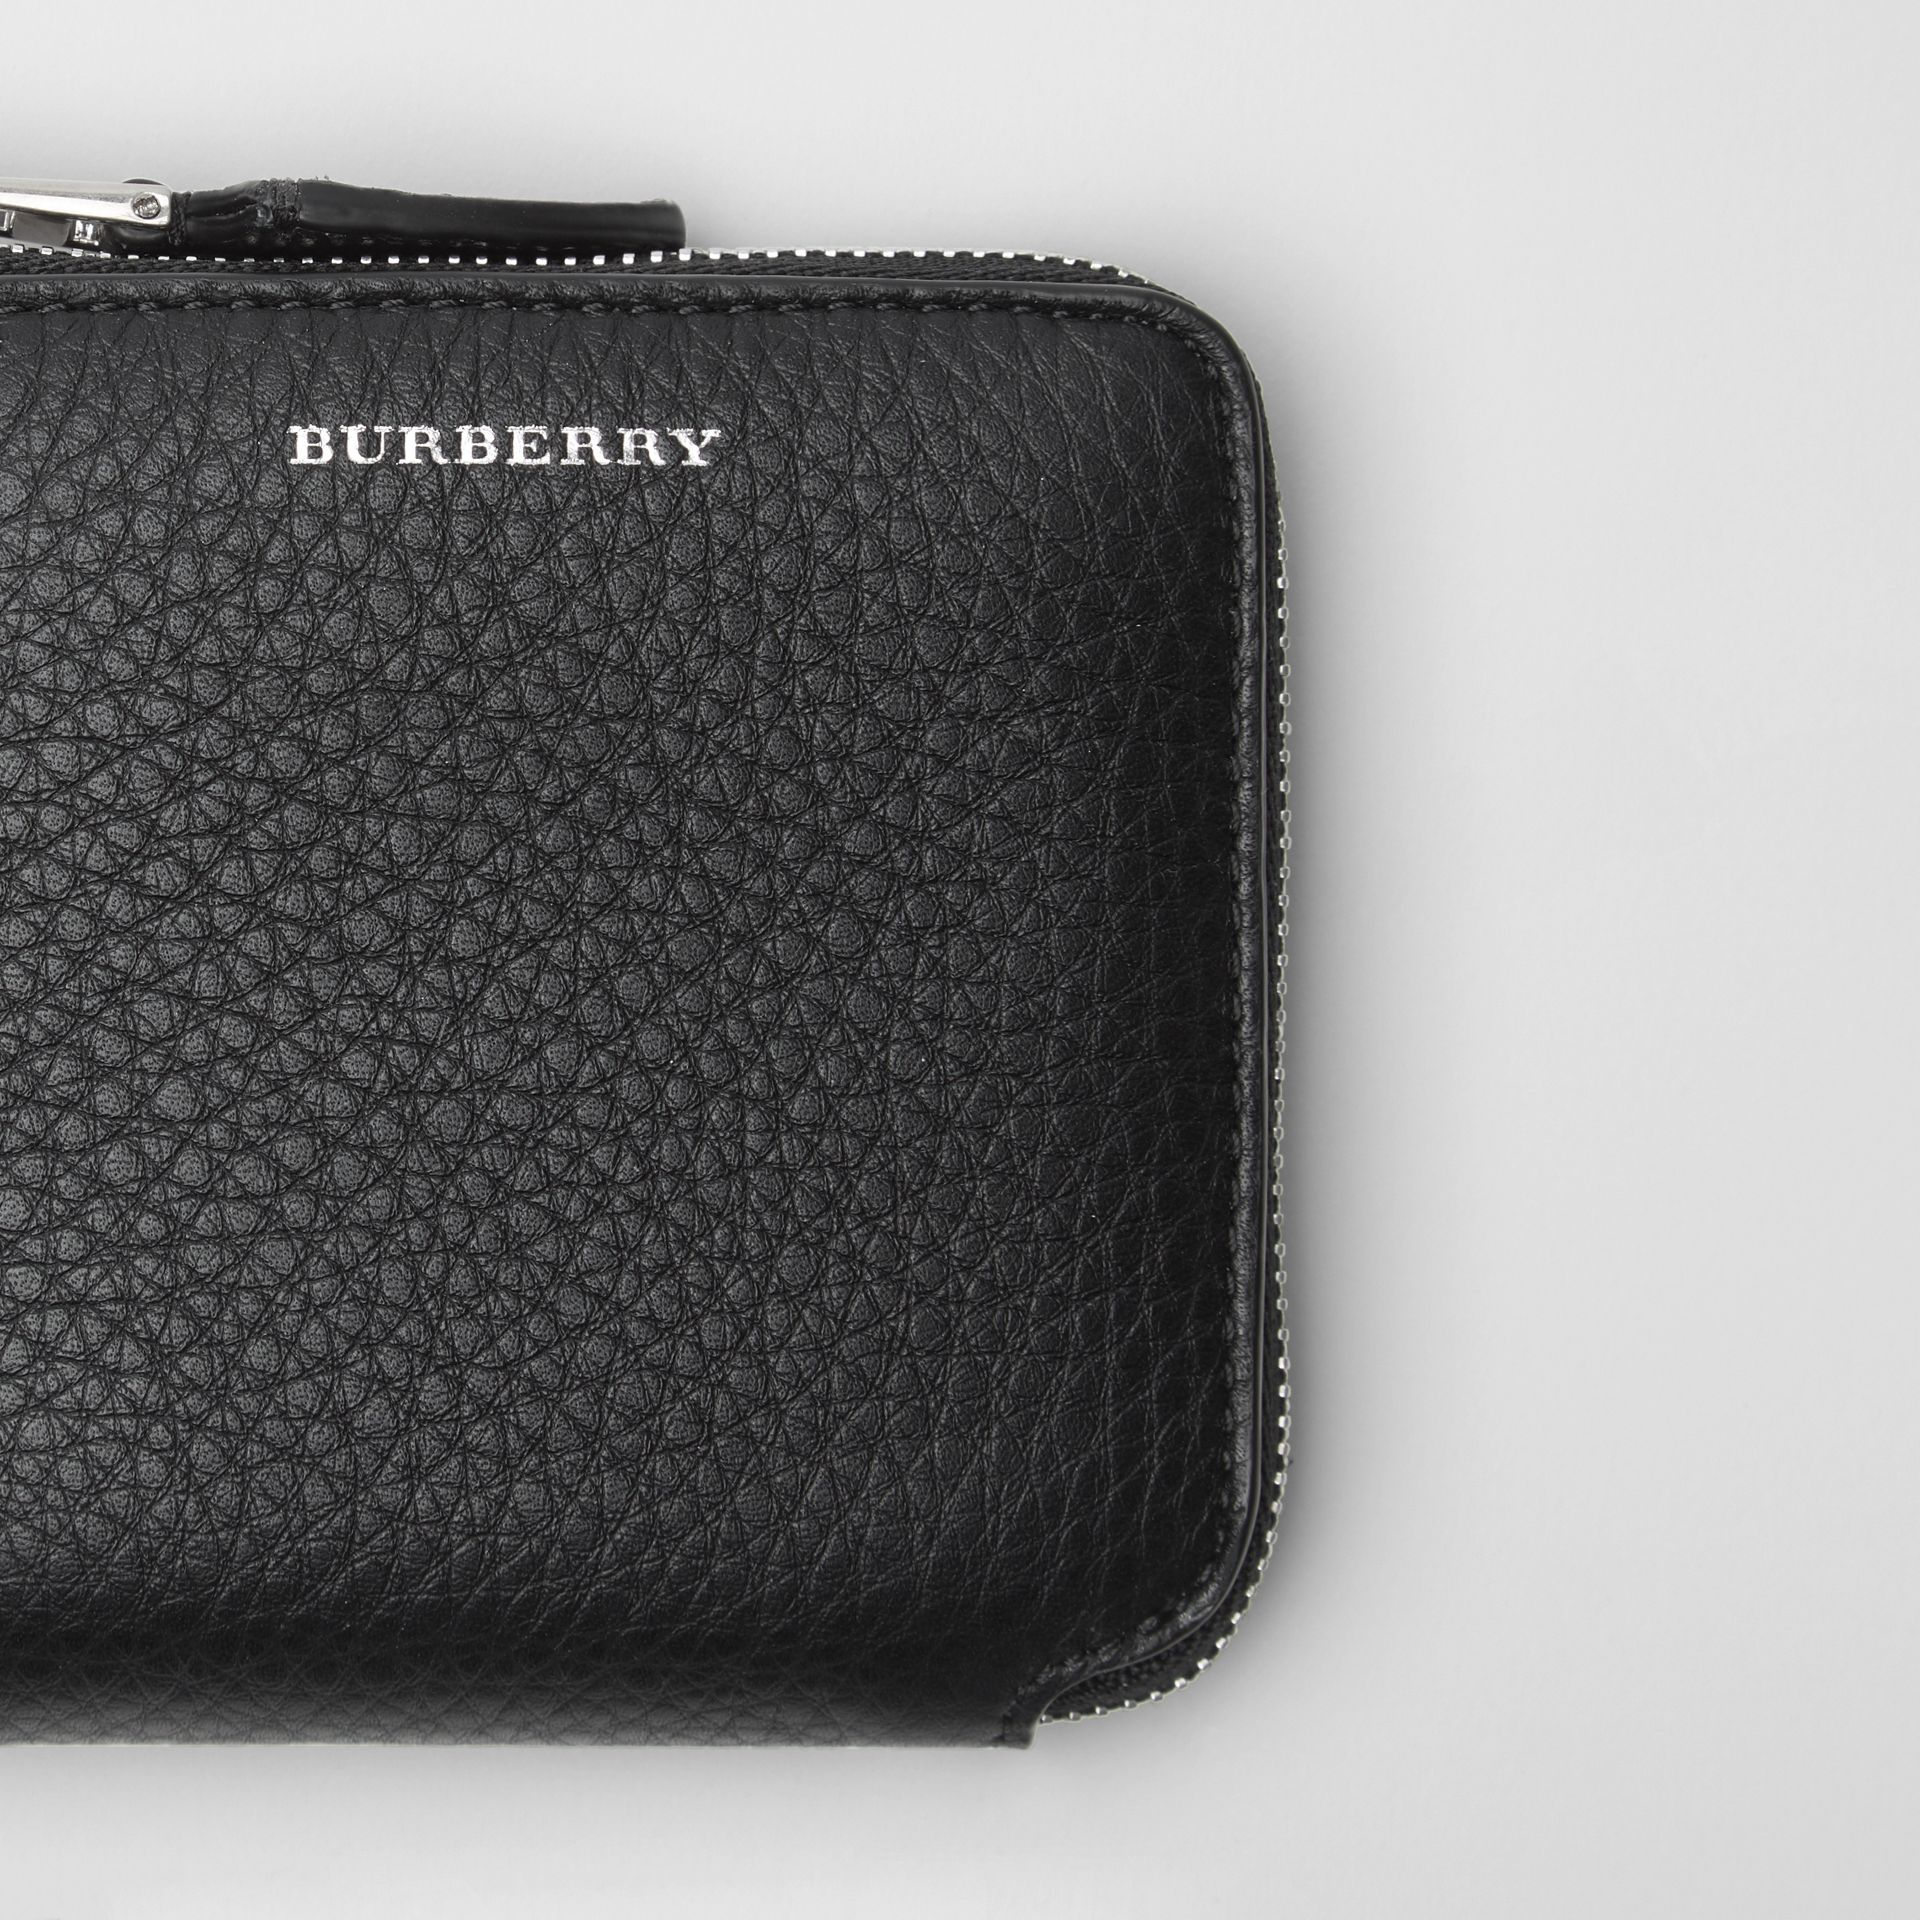 Grainy Leather Square Ziparound Wallet in Black - Women | Burberry Hong Kong - gallery image 1